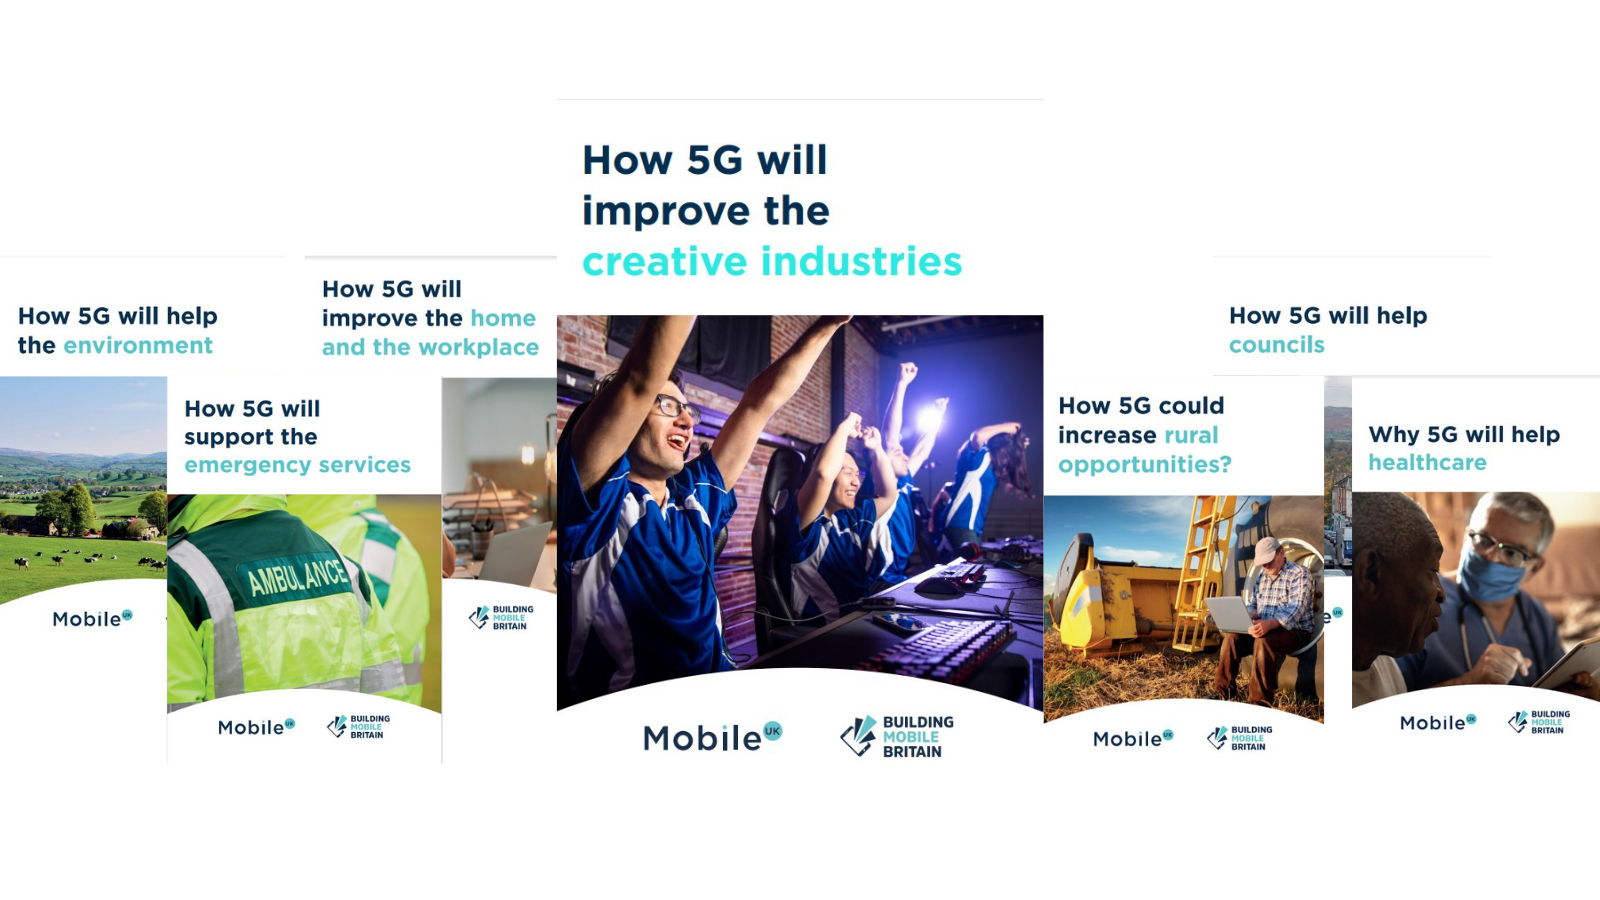 5g, #5GCheckTheFacts, Mobile, Creative Industries